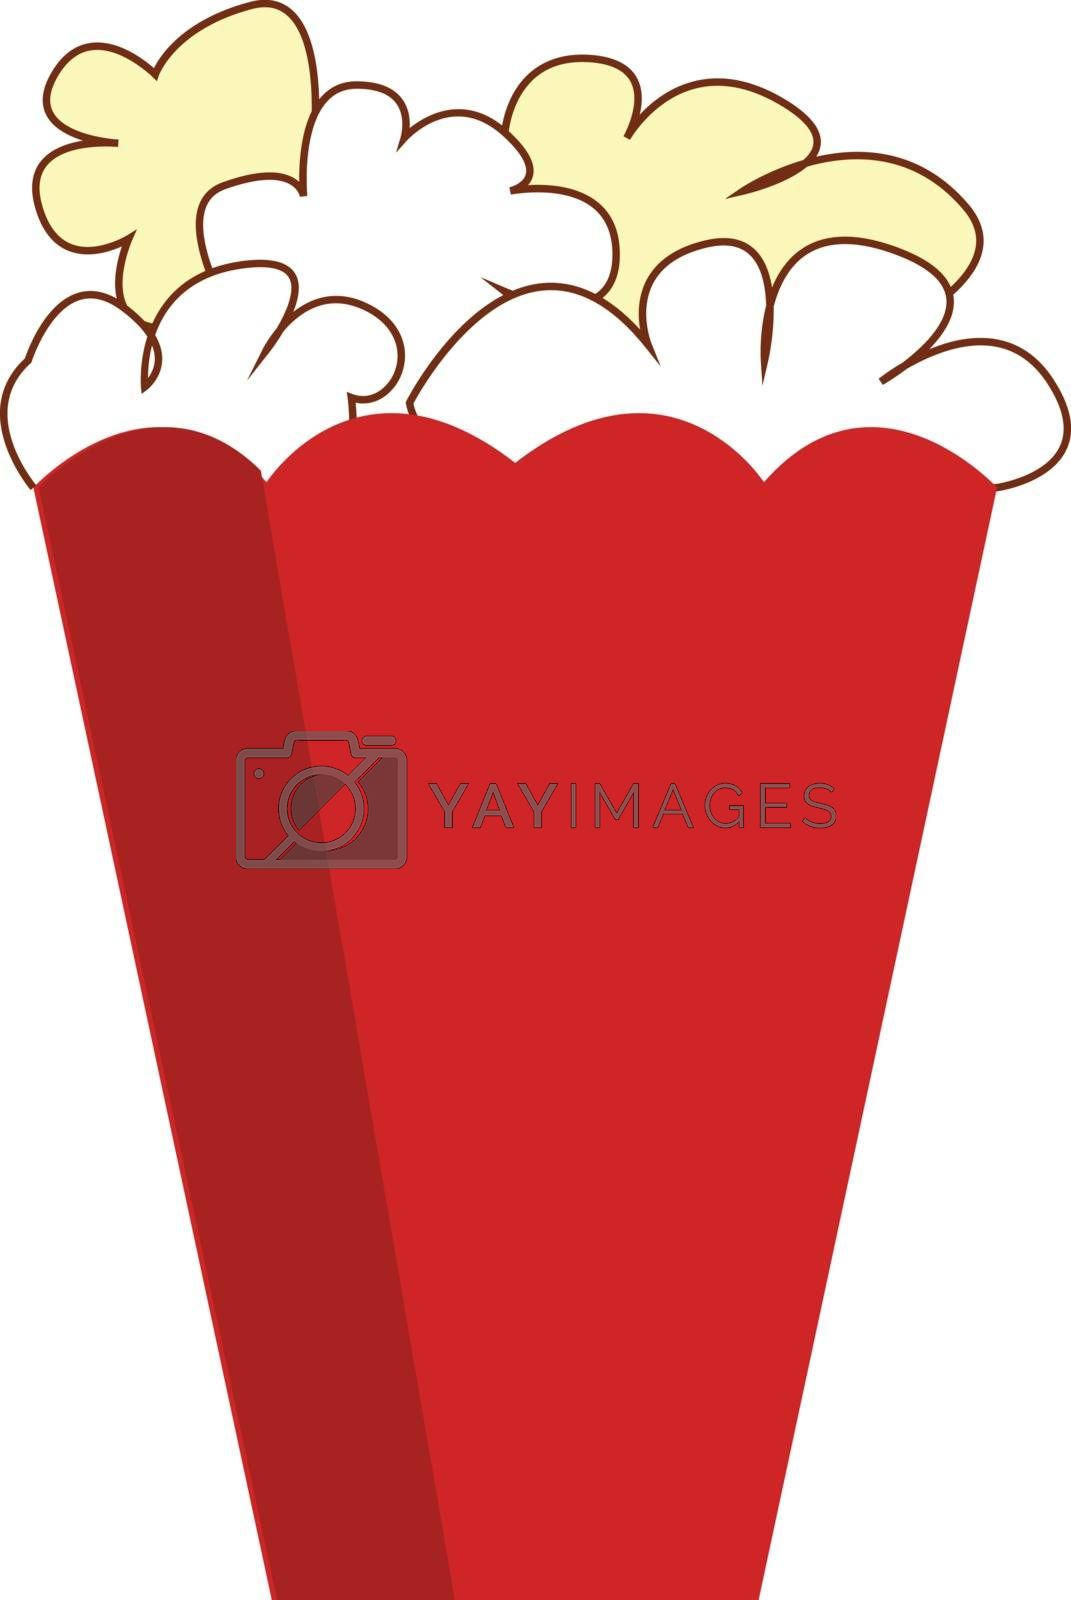 Royalty free image of Drawing of yummy popcorn in a red paper box over white backgroun by Morphart